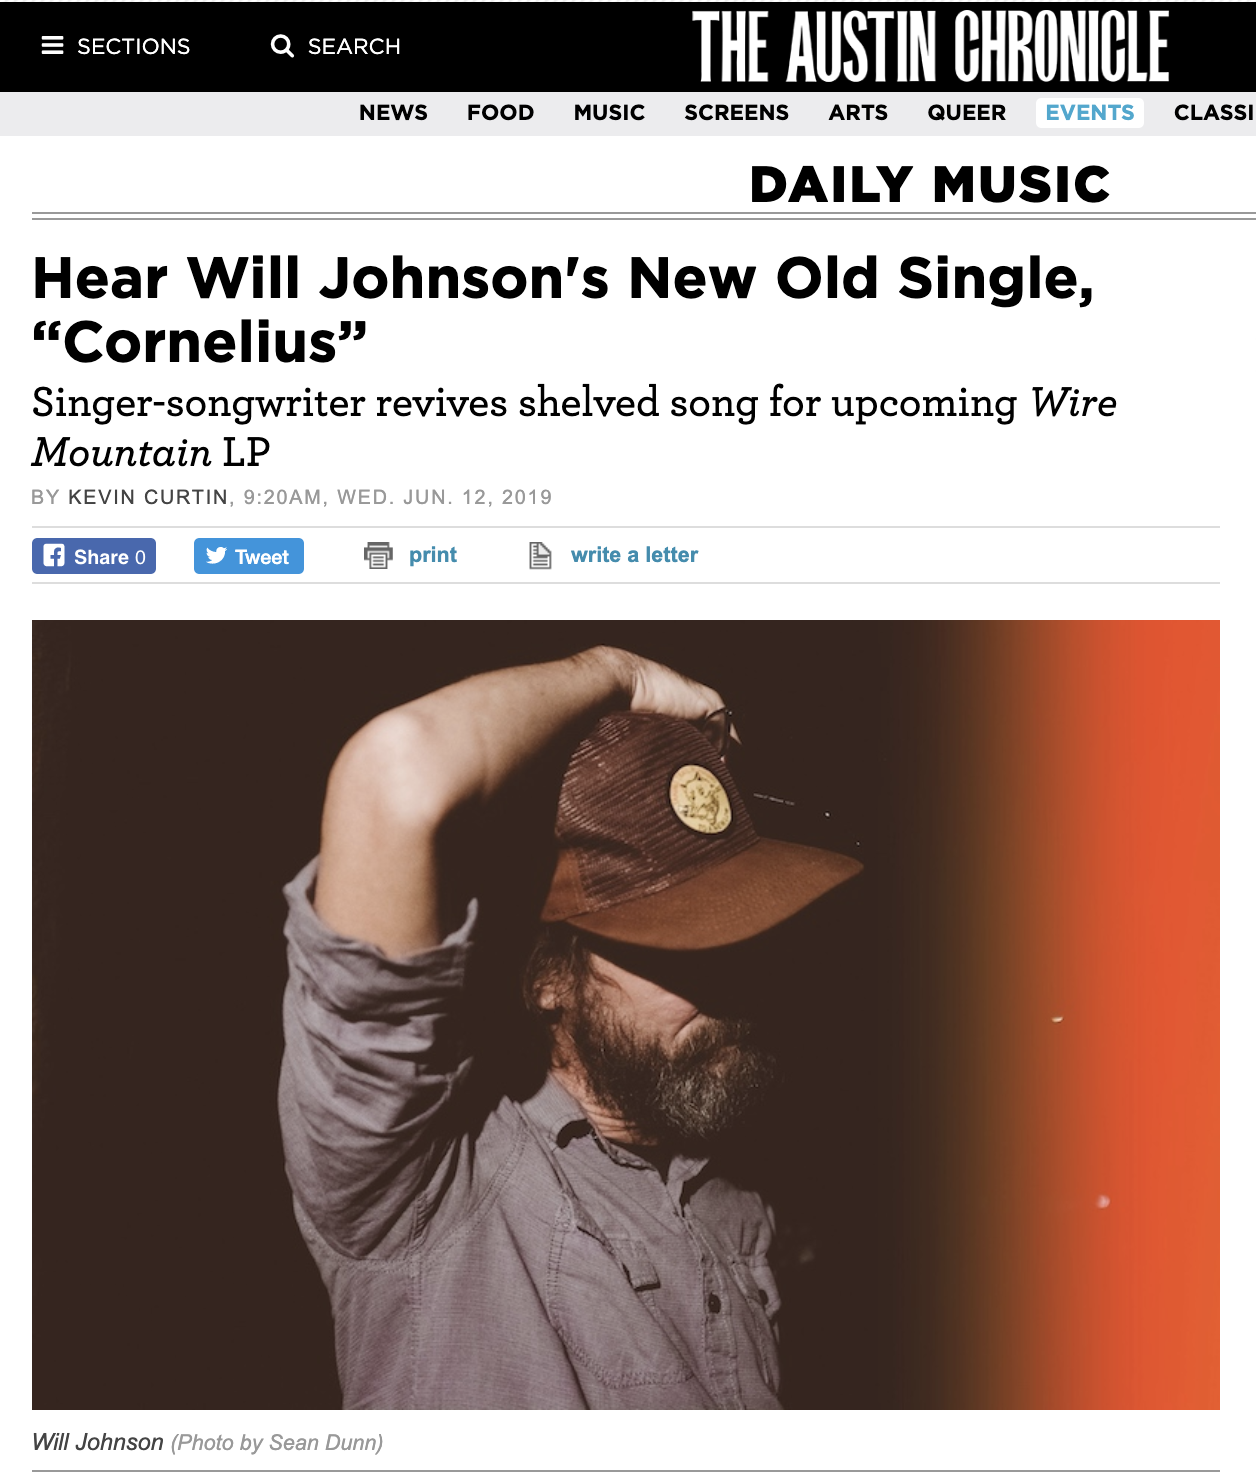 "Austin Chronicle premieres first track, ""Cornelius,"" from Will Johnson's new album Wire Mountain - June 12, 2019""Will Johnson's got no problem shelving a great song. To him, ""the ride"" of a record is so paramount that outliers – even if they're superb – are sent to purgatory. Such had been the case with ""Cornelius.""""That damn song,"" he says. ""I thought it was gonna go by the wayside. It'd been hanging around for about 10 years and I could never find the right collection of songs to tuck it into. It finally found a home.""At last, the pounding and melodic four-and-a-half minute track slots into Wire Mountain, his newly announced seventh solo LP arriving Sept. 27 on Keeled Scales.The stains of small-town life – loneliness, nosiness, and dysfunction – factor heavily into ""Cornelius."" It's, in fact, a remnant of time Johnson spent in Bastrop, which inspired the characters and settings in the song. The singer, painter, and multi-instrumentalist contends the lyrics aren't autobiographical at all, but there are coincidences.""There's the line: 'Tell them all about the tricks you pulled/ Seven years in Luling dodging truth,' which is what I was doing… but in Bastrop,"" he chuckles.The track, reimagined from an old demo, thrives with a primal rack and floor-tom beat from fellow cult favorite Thor Harris and an inspired unison vocal from Little Mazarn's Lindsey Verrill. Another Austinite, veteran underground hero Jon Dee Graham, contributes some lap steel and slide guitar alchemy to the mix.""To have all their personalities and fingerprints on that song means so much to me,"" enthuses Johnson, who remembers waking up a year and a half ago just knowing that he wanted Harris and Verrill to be heavily involved in his next record."""